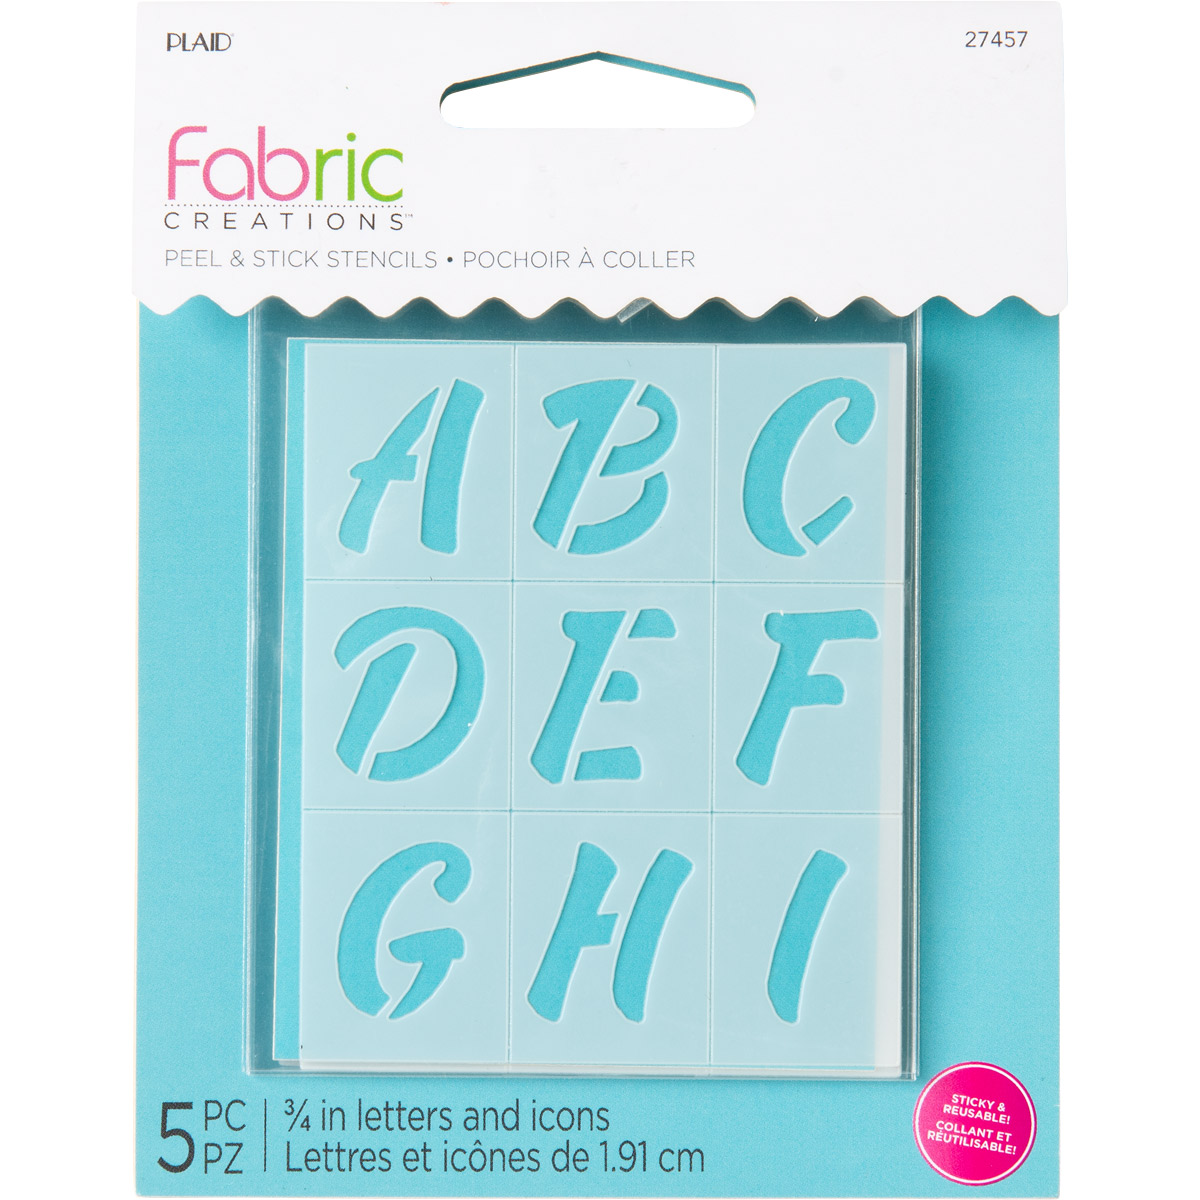 Fabric Creations™ Adhesive Stencils - Mini - Alphabet Sweets, 2-1/2